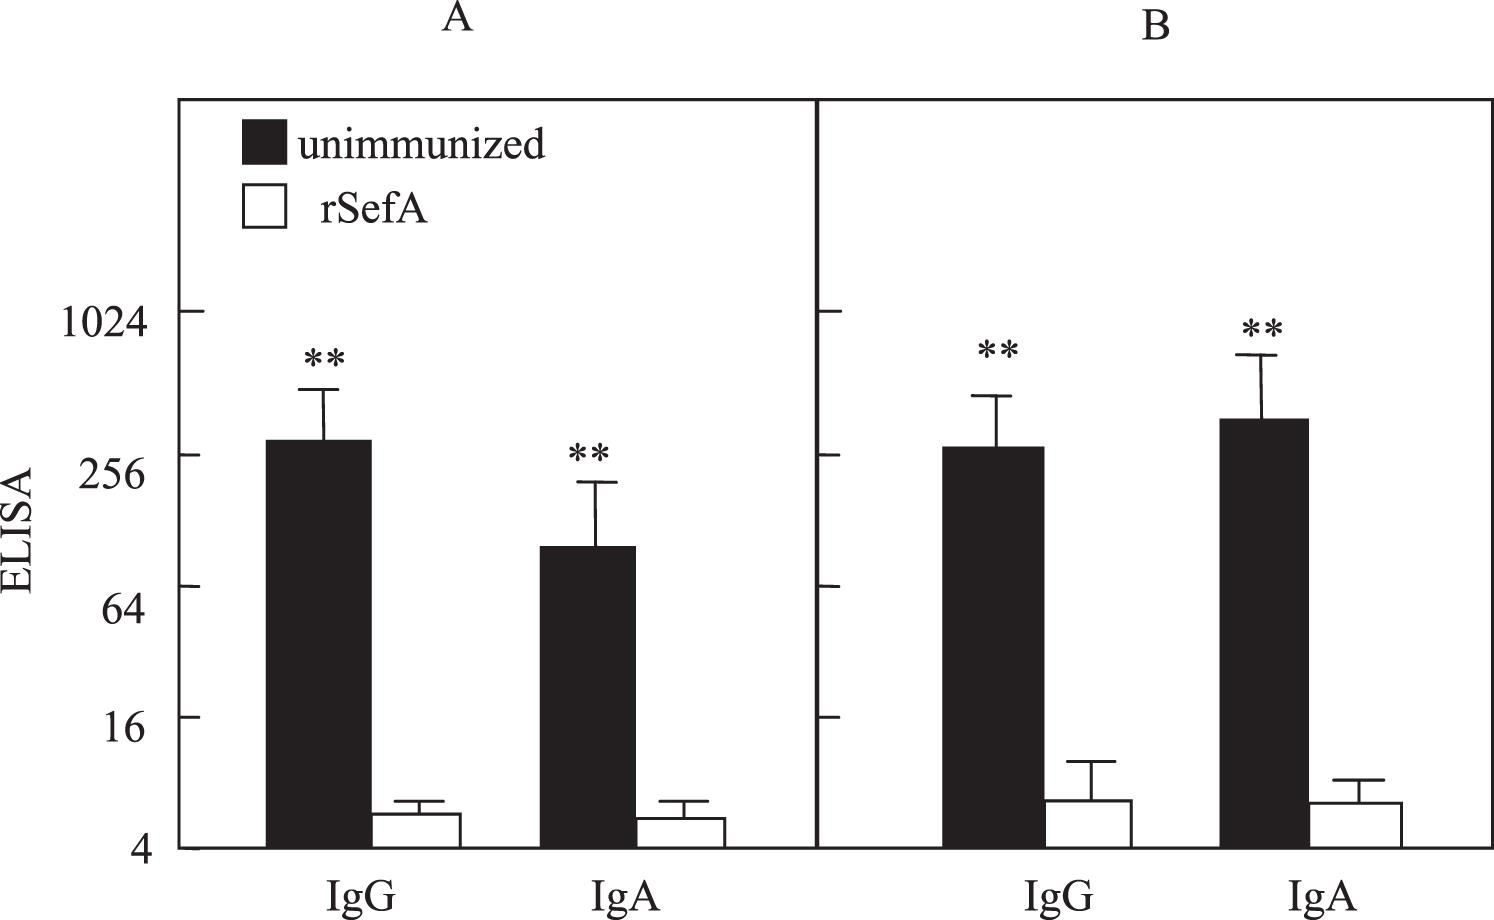 Reduction of Salmonella Enteritidis Number After Infections